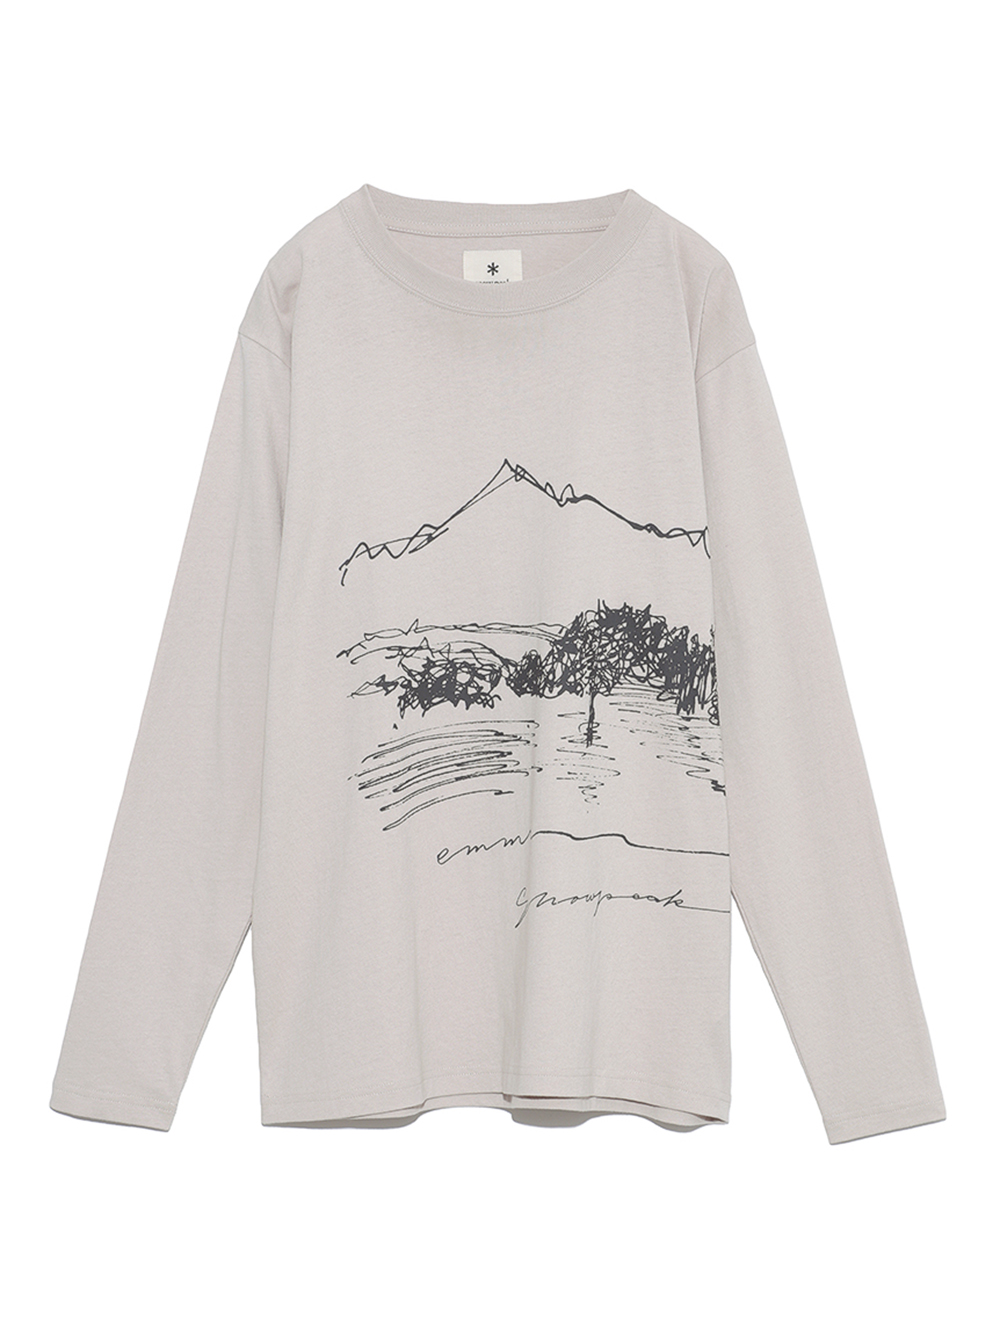 【emmi×Snowpeak】CF Graphic Long Sleeve Tee